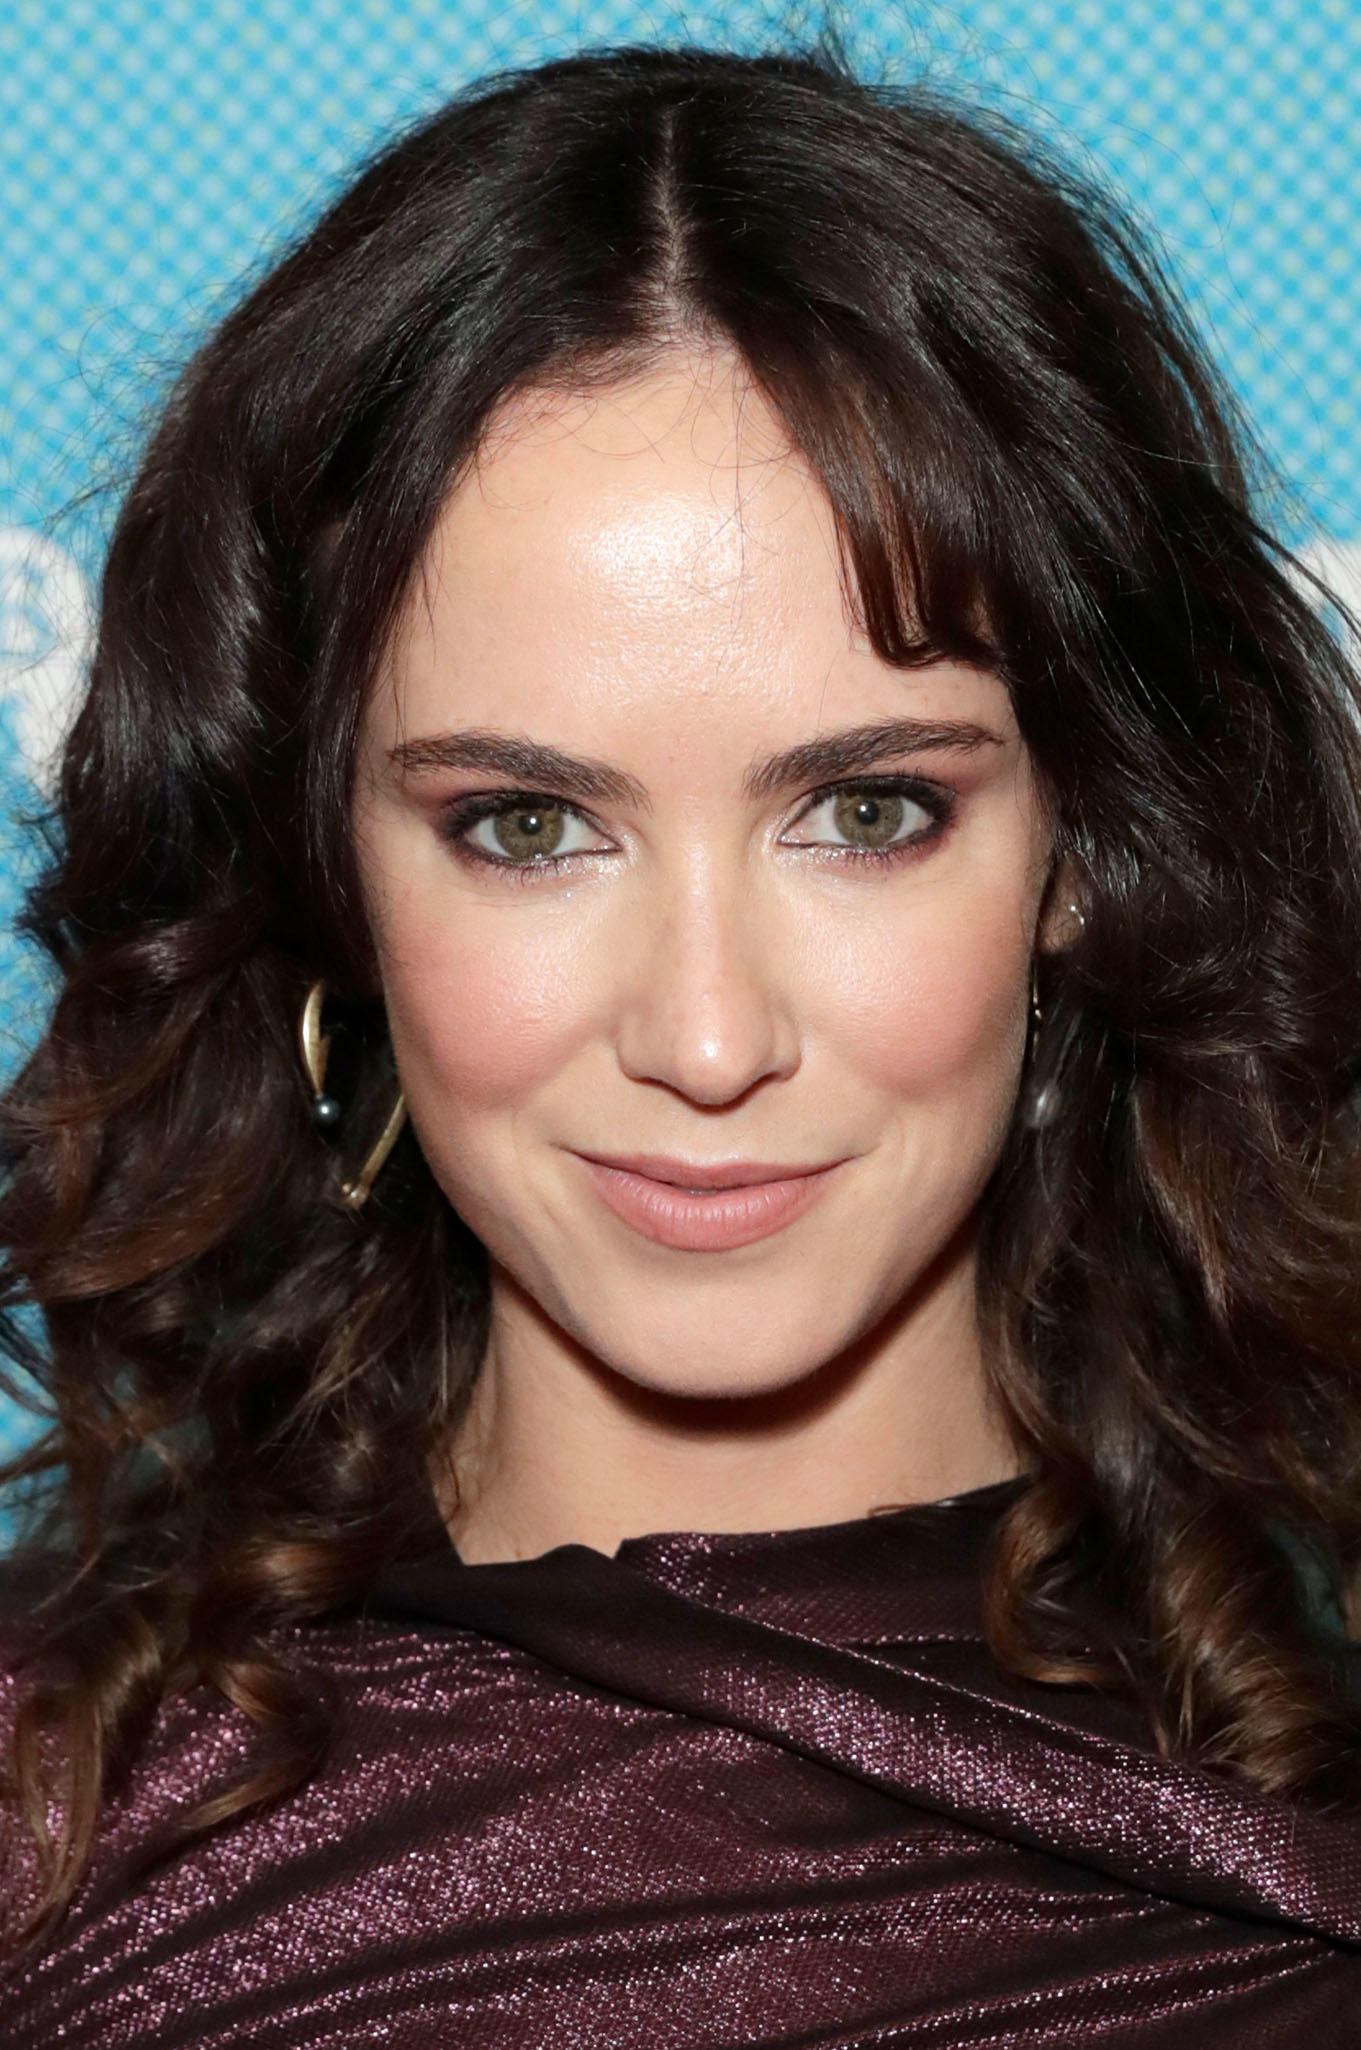 Amy Manson Once Upon A Time amy manson pictures and photos | fandango